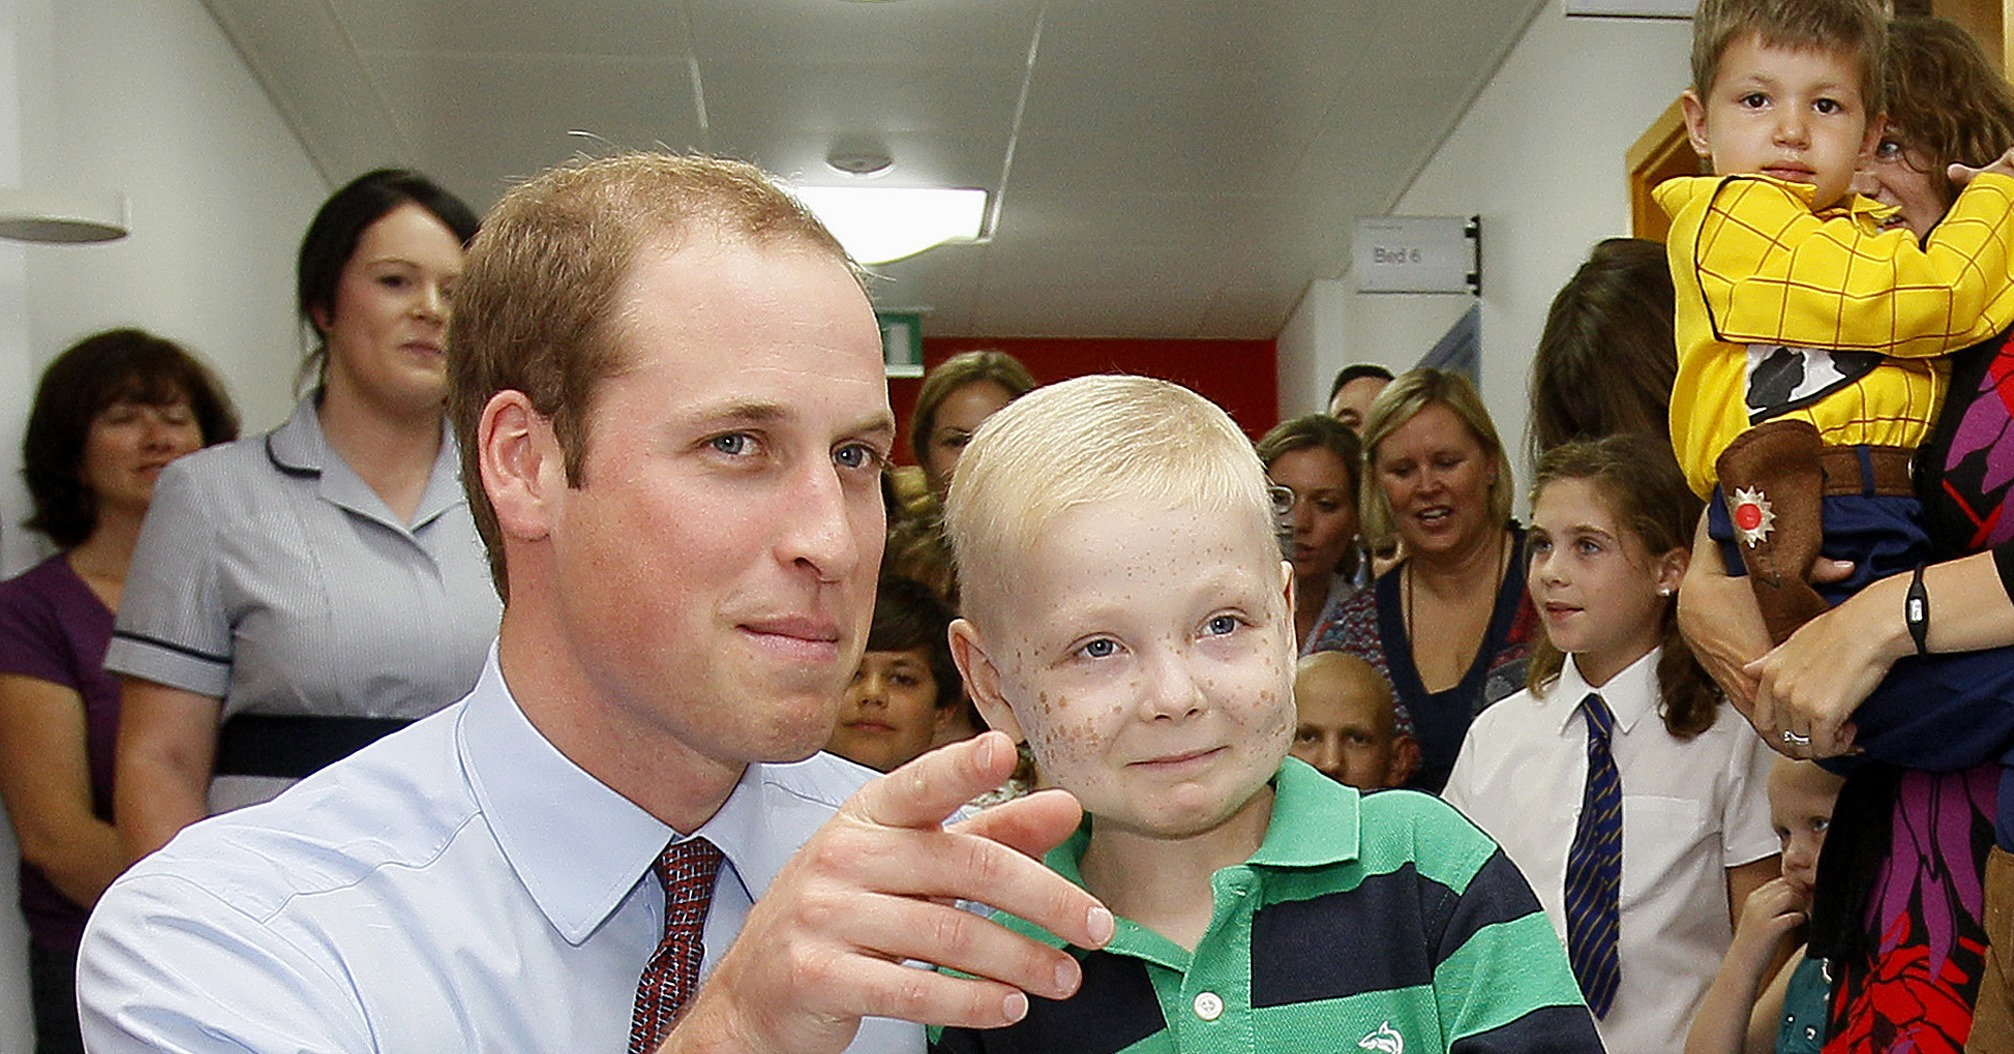 Prince-William-spent-time-young-patient-named-Ellis-Andrews.jpg